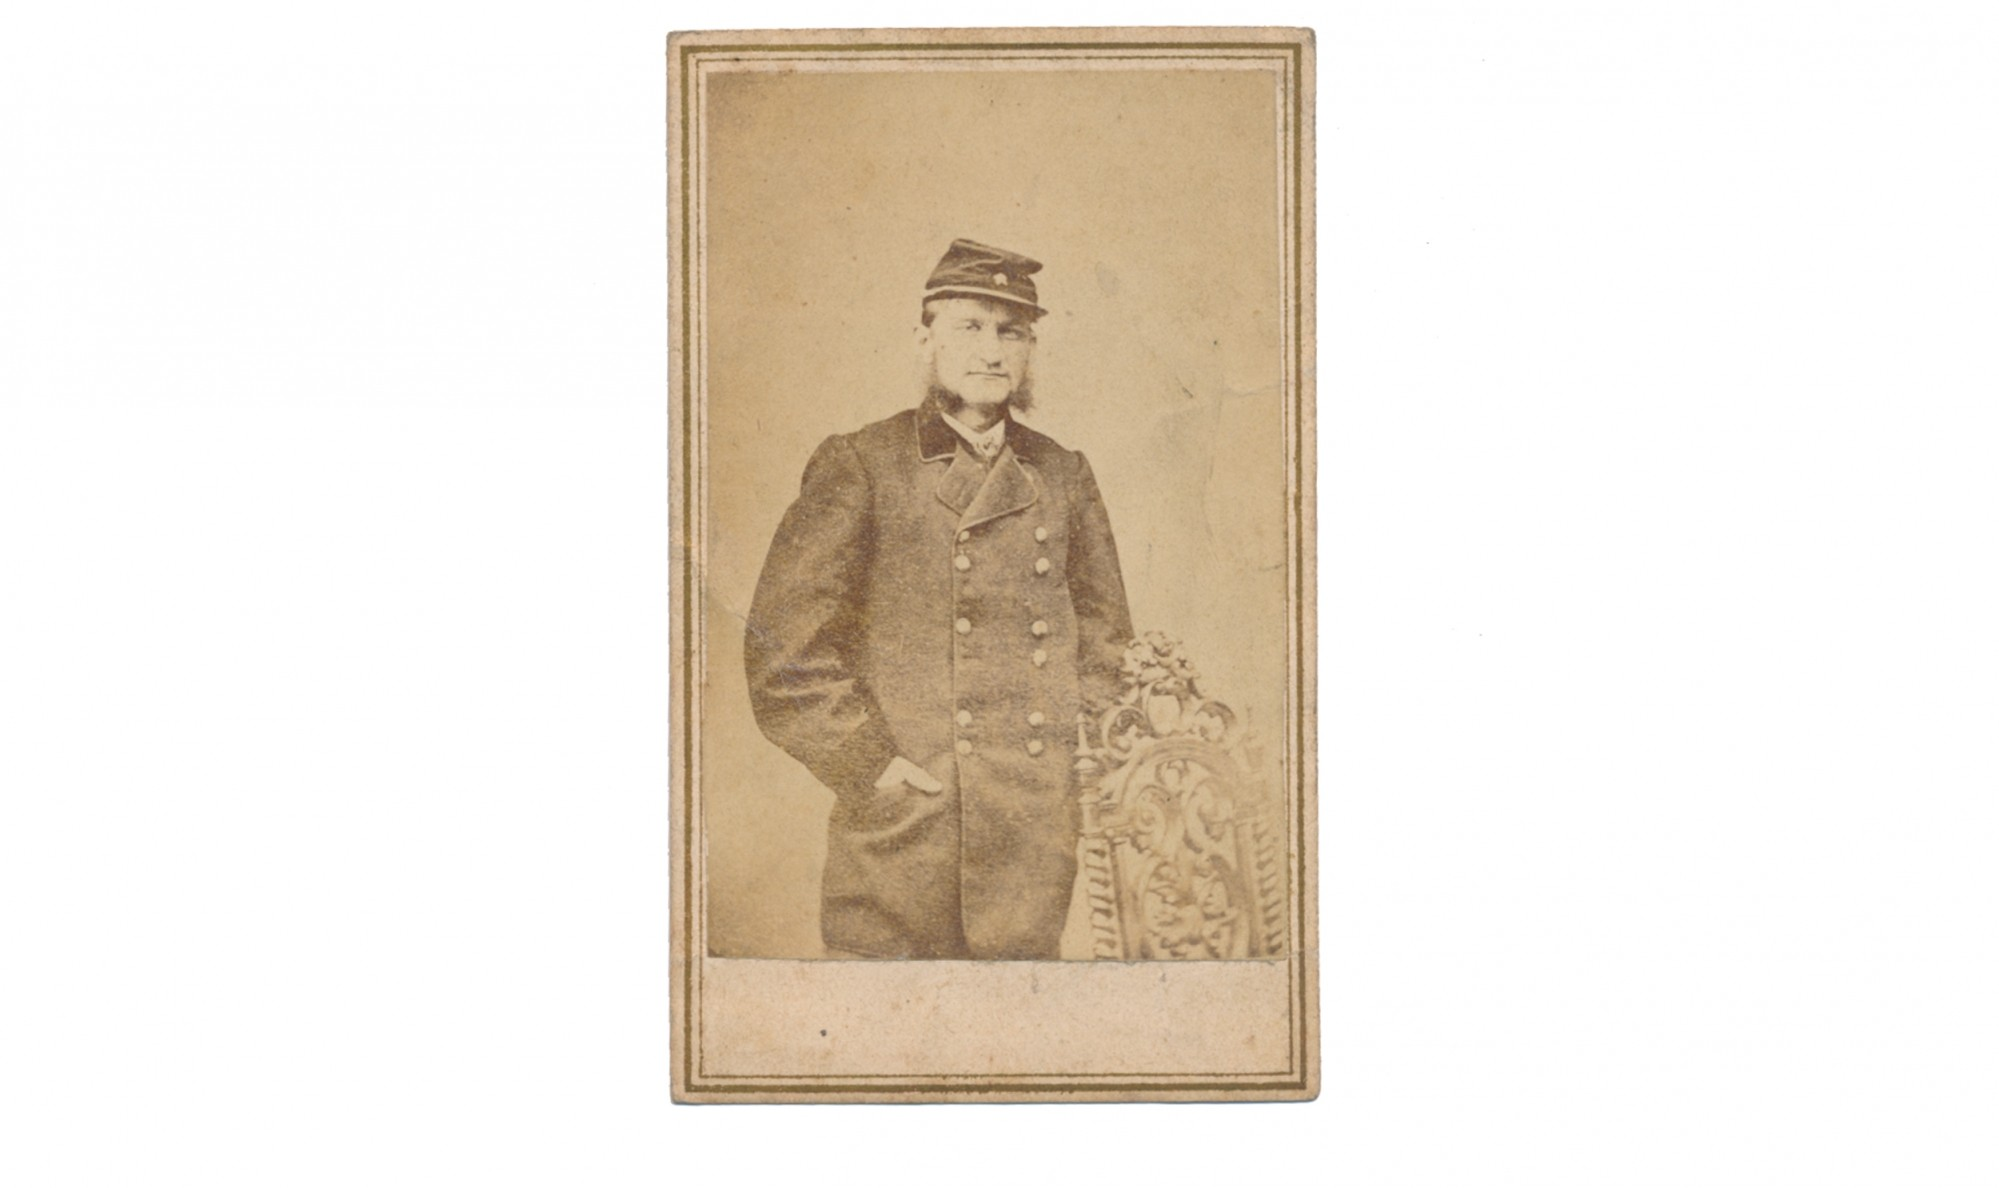 CDV OF US GENERAL HUGH JUDSON KILPATRICK